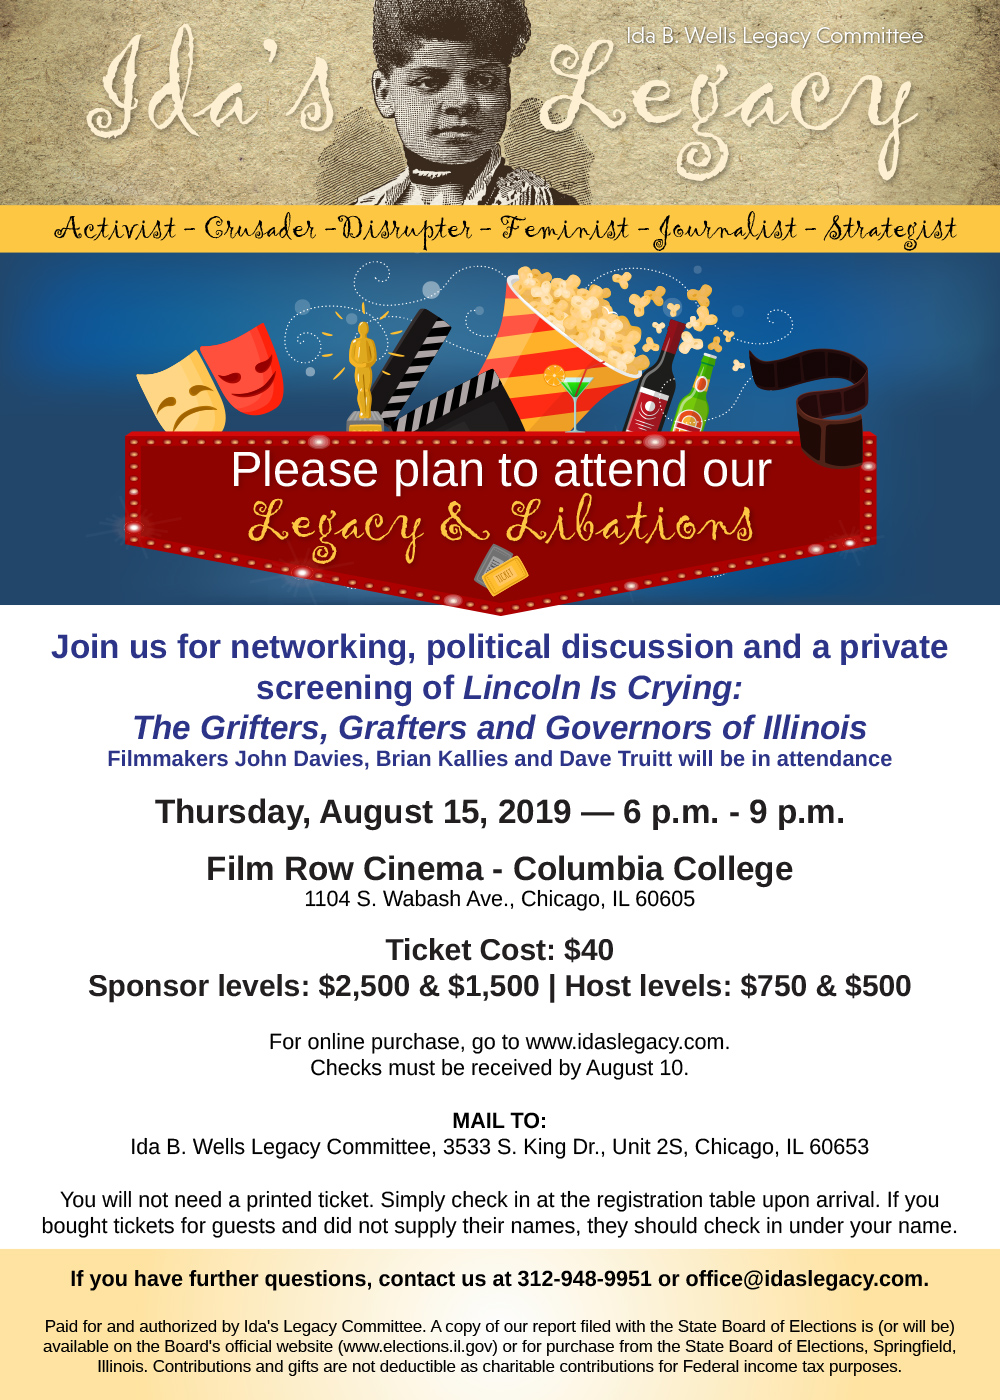 Idas-2019-Legacy-and-Libations-flyer-H